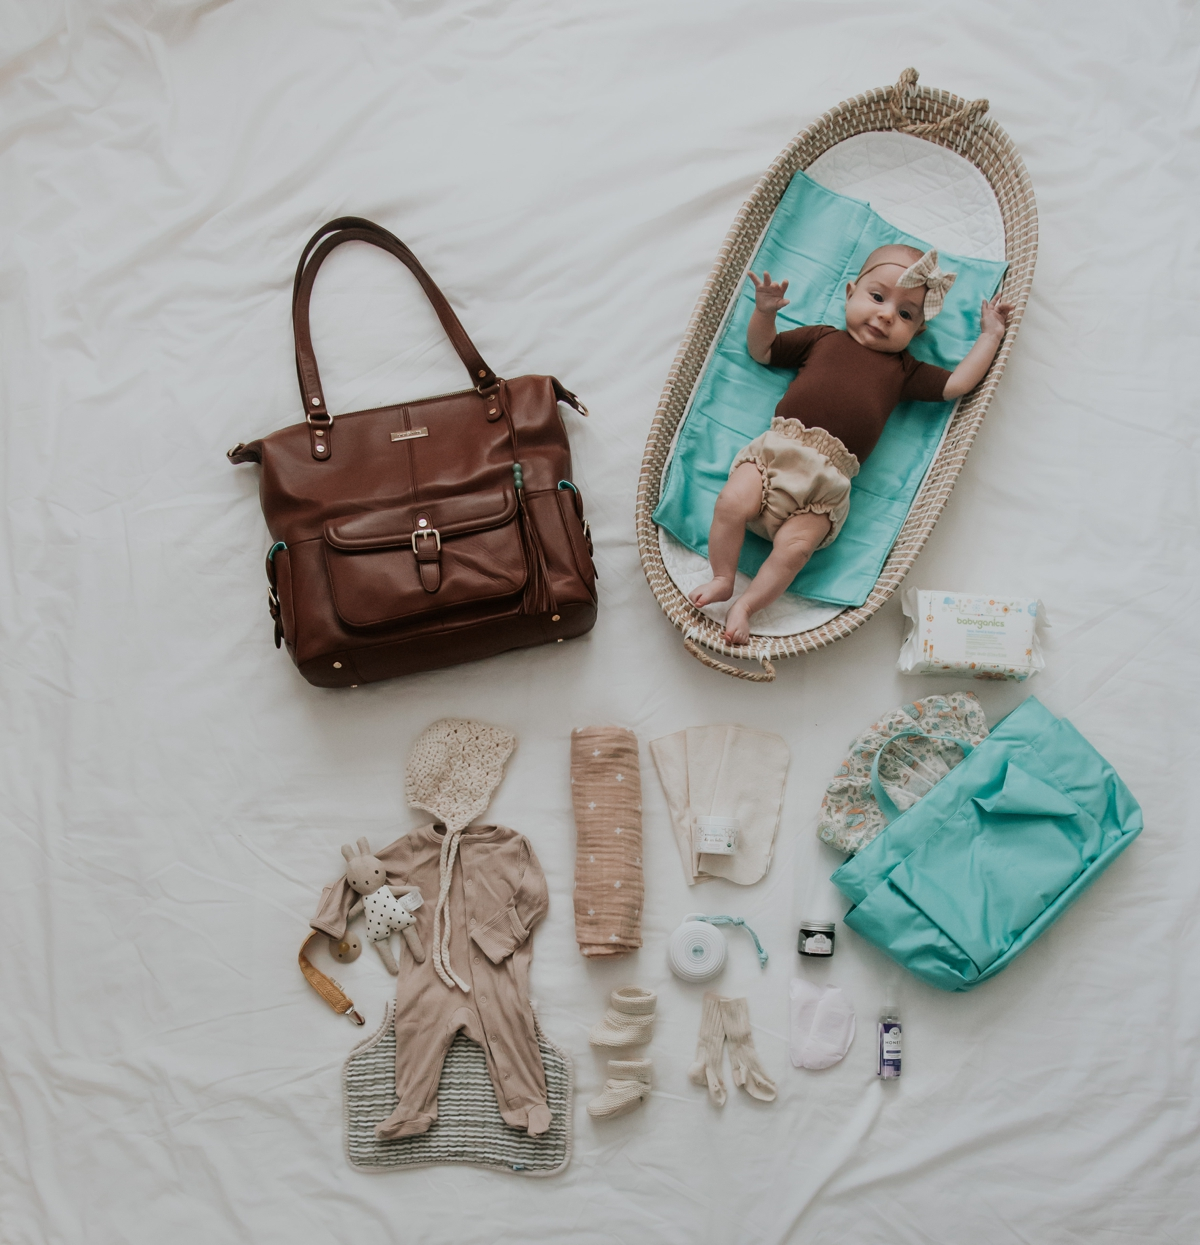 Kandis_Marino_Photography_Lifestyle_Lily_Jade_Diaper_Bag_Influencer_Abassador_Boho_Room_Home_Design_Decor_Modern_Mid_Century_Baby_Mom_Blogger_Mommy_Blog_Newborn_Pregnancy_0113.jpg